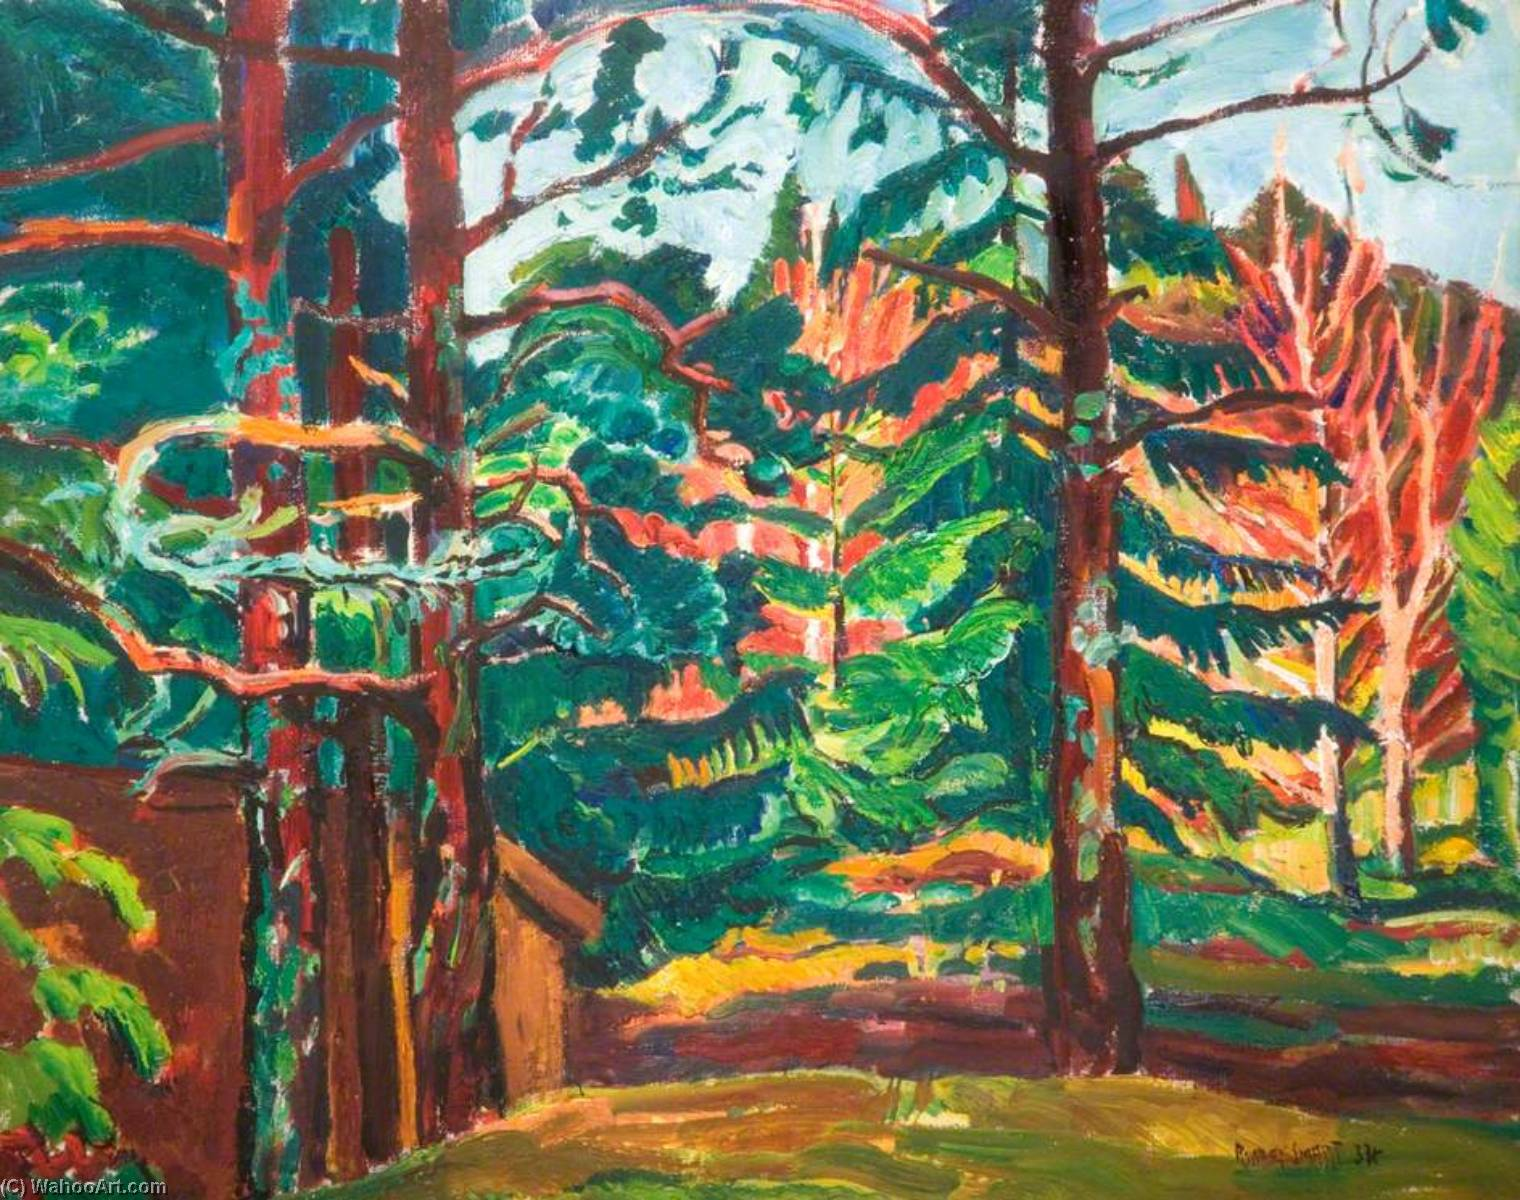 Swedish Landscape, 1934 by Rowley Smart | Art Reproduction | WahooArt.com